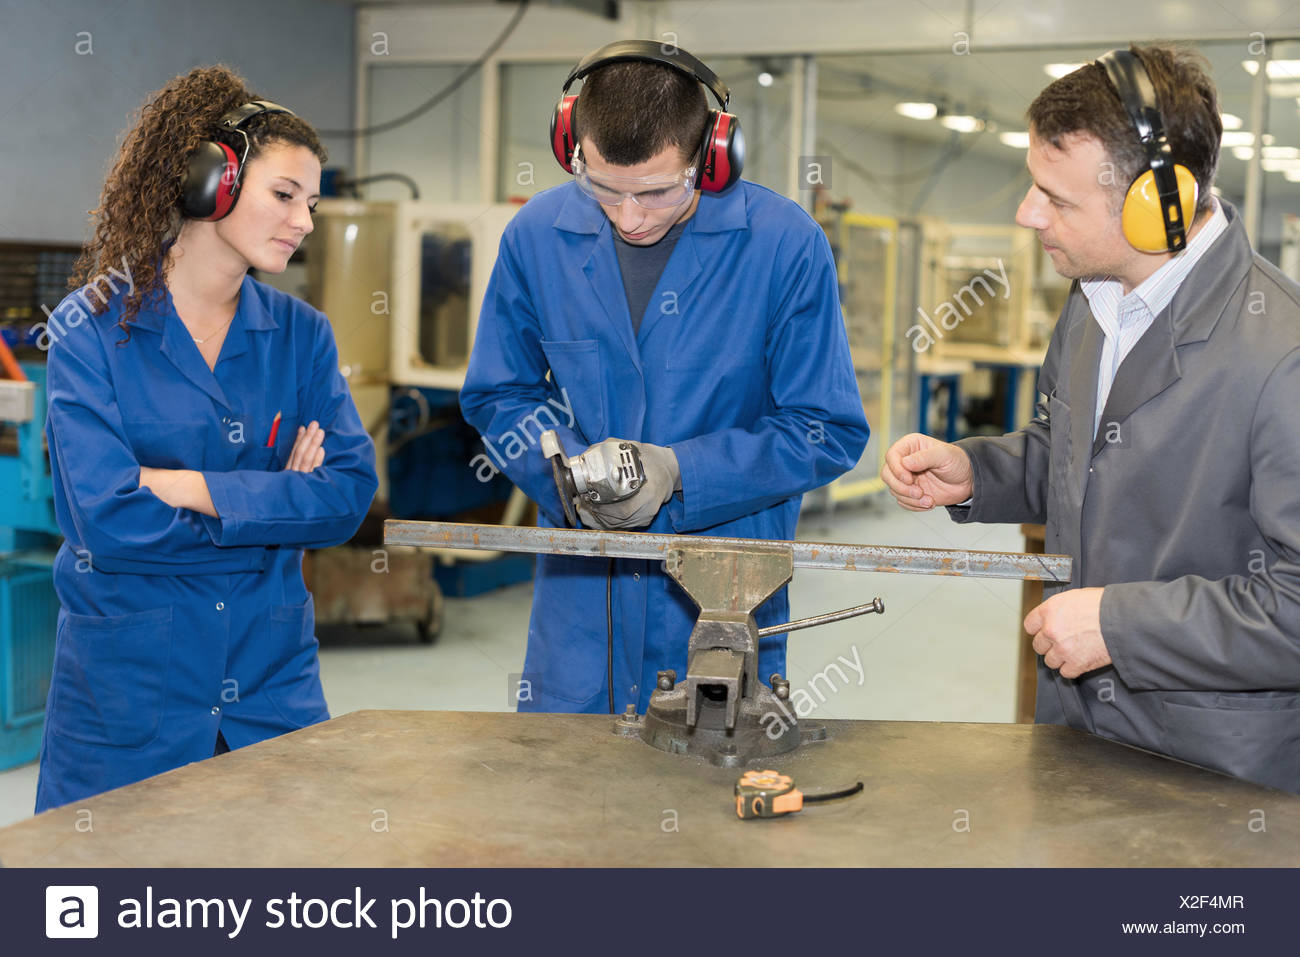 Student using angle grinder - Stock Image